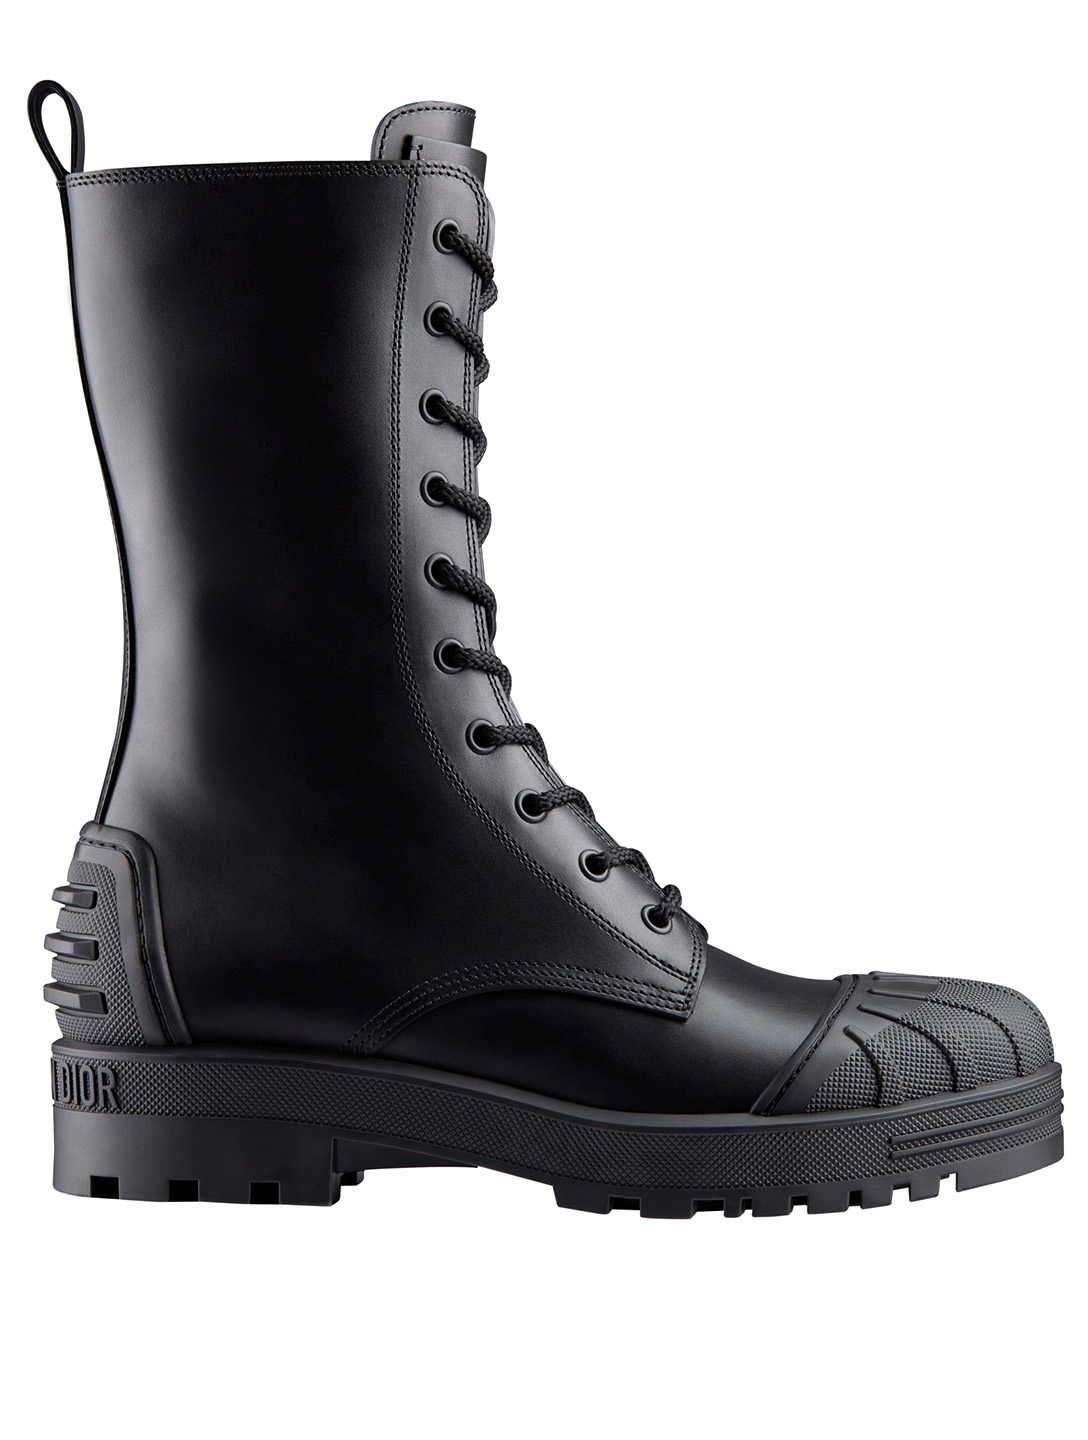 DIOR Dioriron Leather And Rubber Lace-Up Boots Women's Black